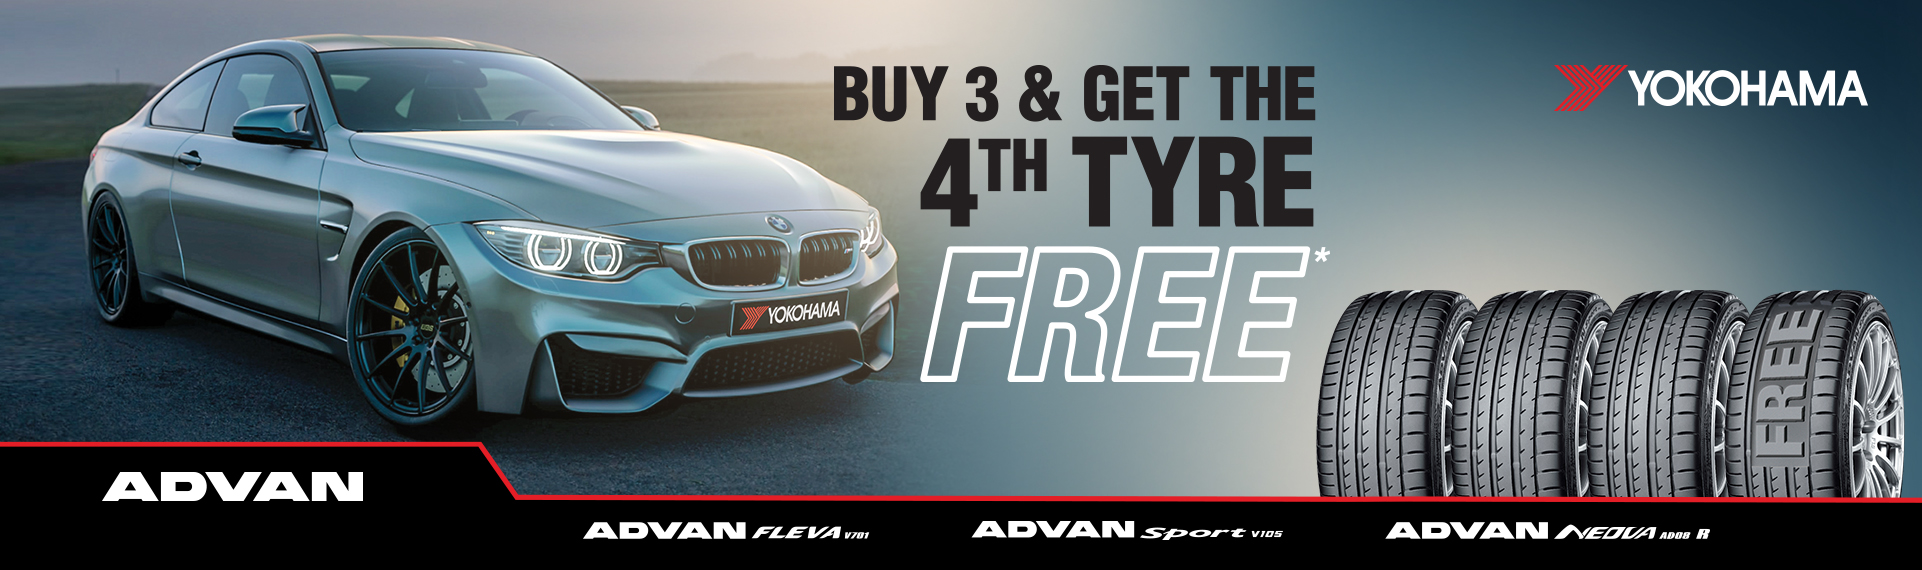 October 2020 Offer Buy 3 & Get the 4th Tyre FREE